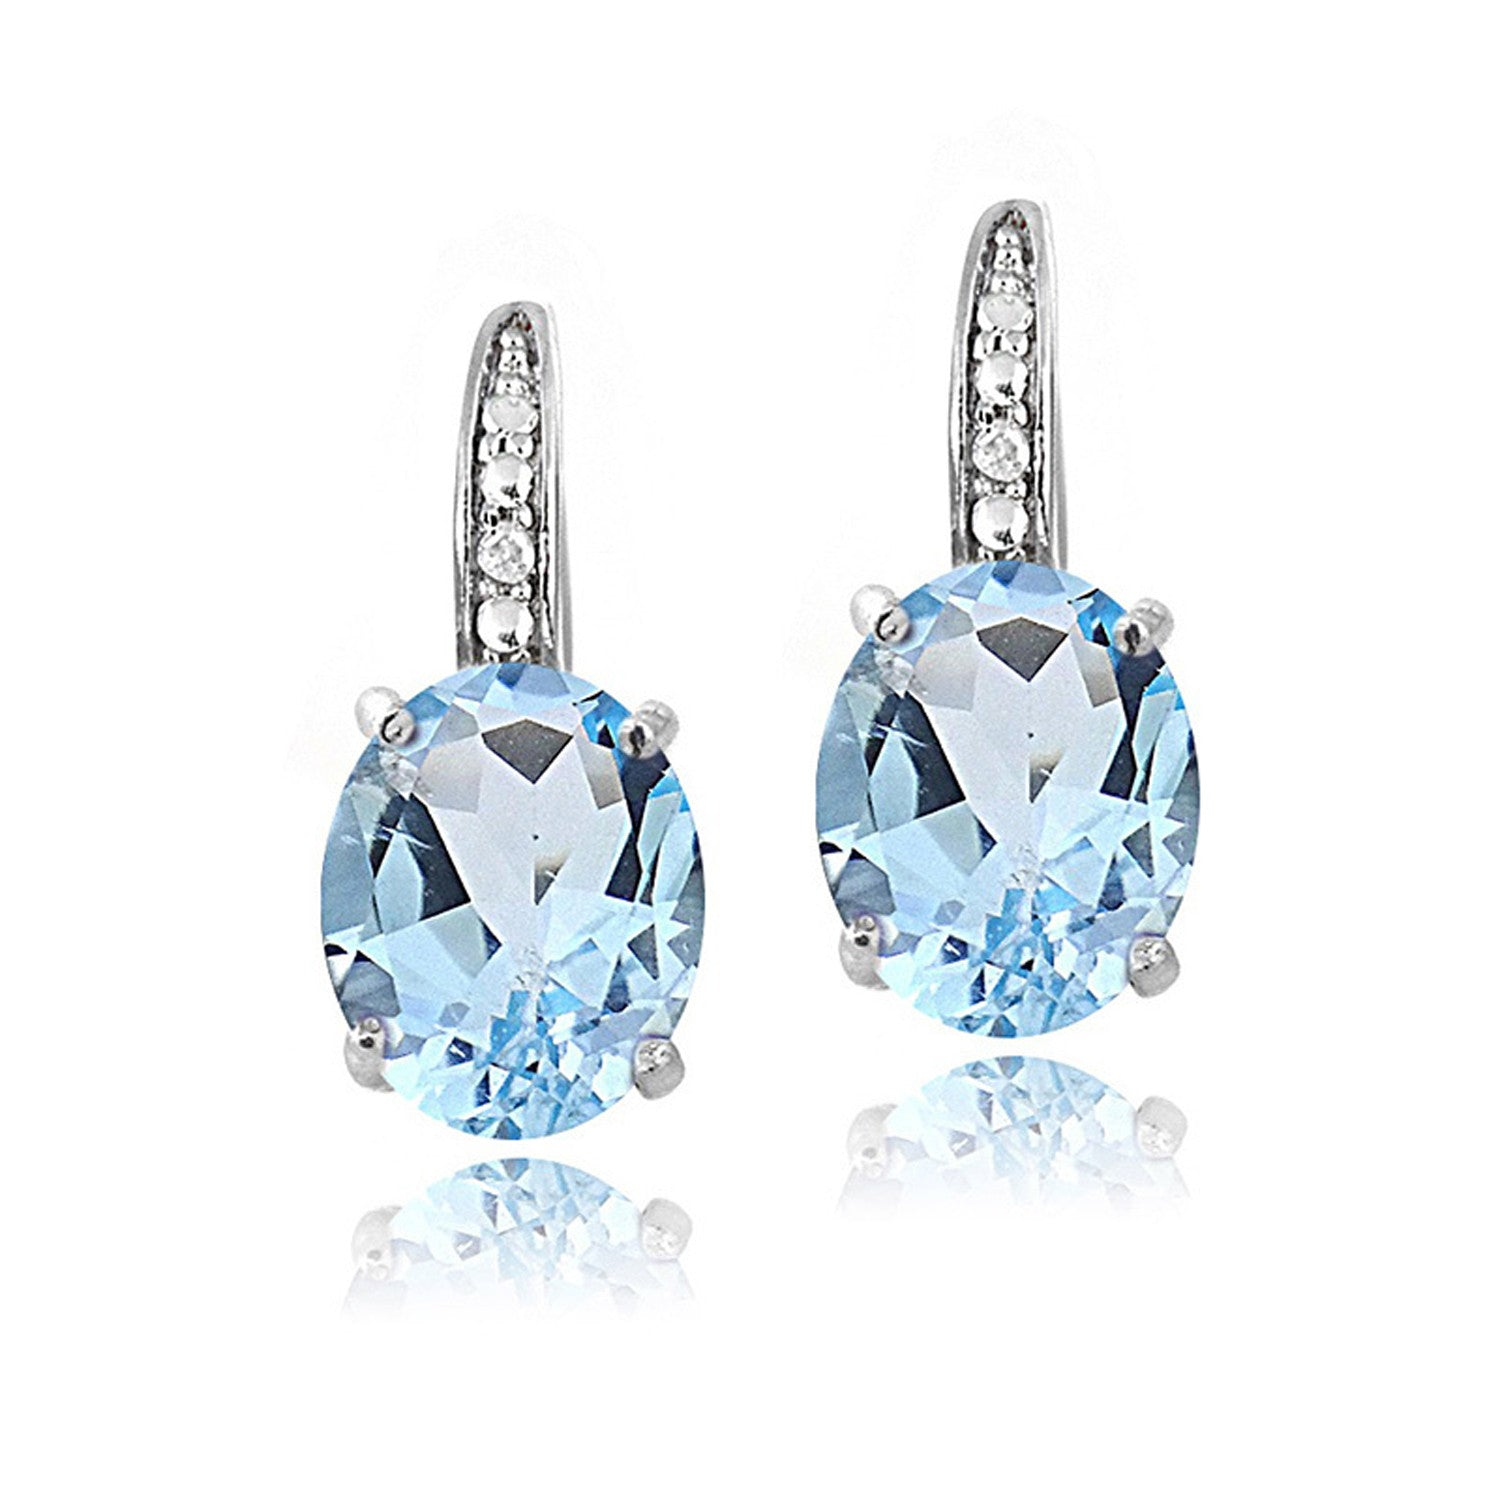 Sterling Silver Diamond & Gemstone Accent Leverback Earrings - Blue Topaz